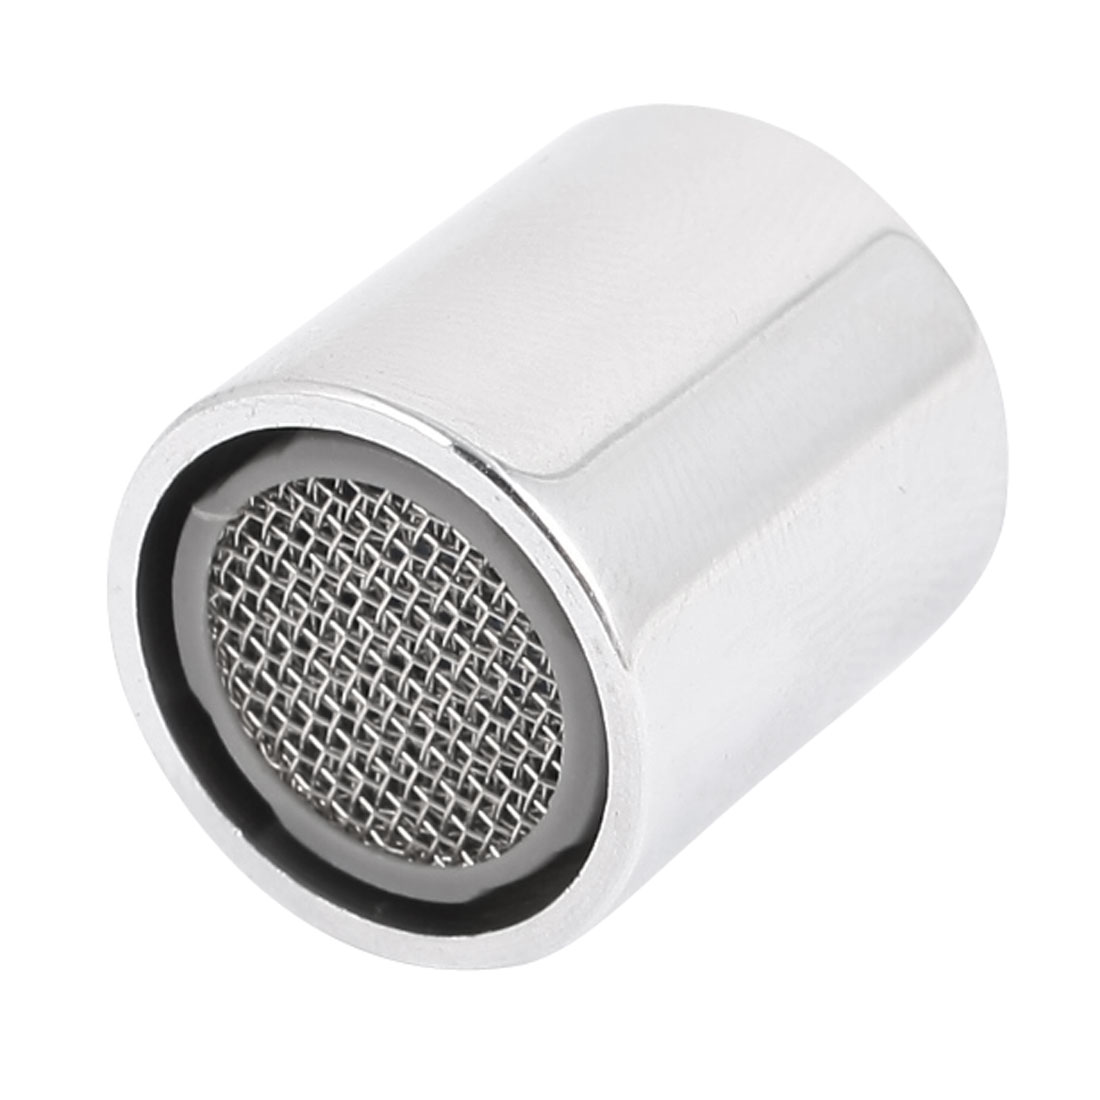 UXCELL 16mm Female Thread 14mm Water Outlet Silver Tone Water Saving Faucet Tap Filtering Net Spout Aerator Nozzle W Seal Gasket